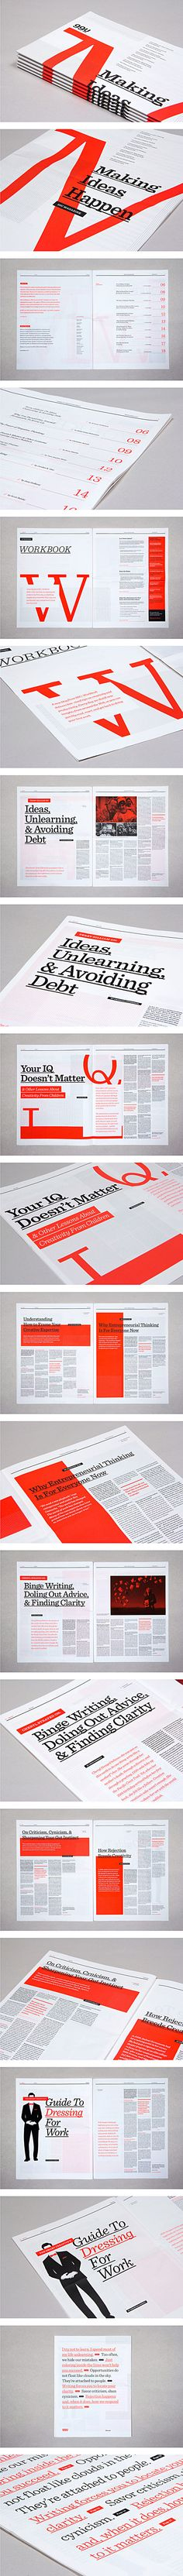 grid + typography + illustration + finishing + print in general // 99U annual magazine